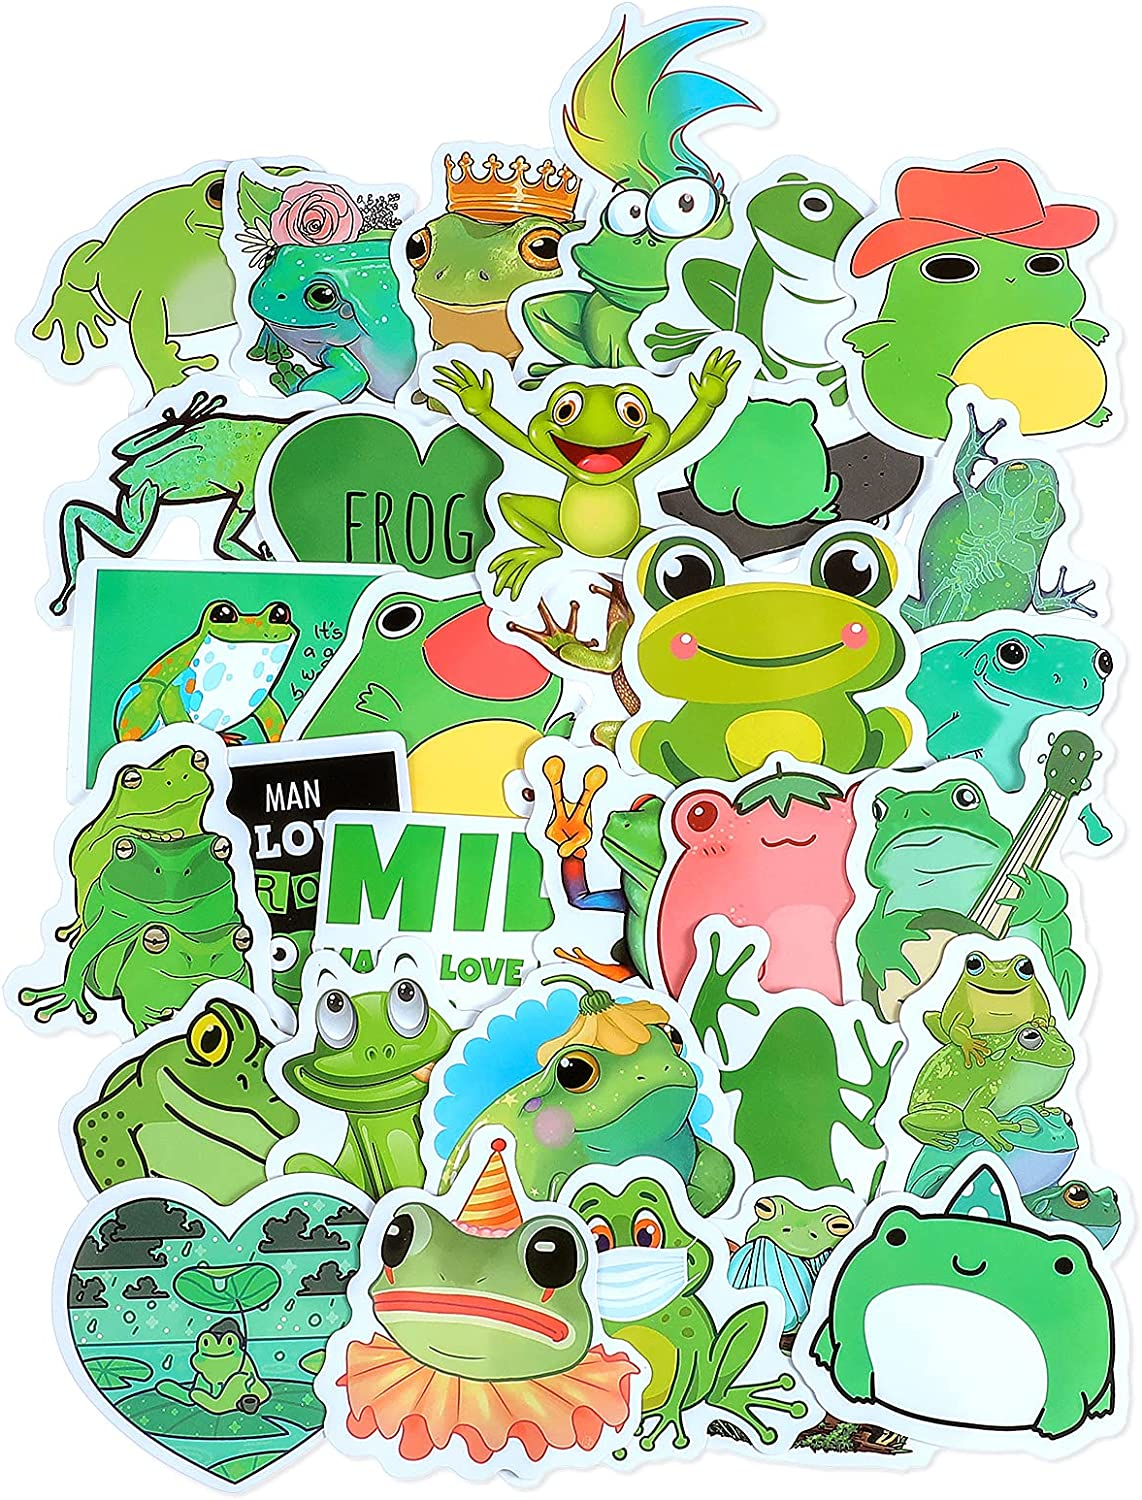 100 Pieces Frog Stickers Cute Frog Decals Waterproof Vinyl Laptop Stickers Frog Theme Decorative Stickers for Computer, Luggage, Guitar, Bottle, Refrigerator